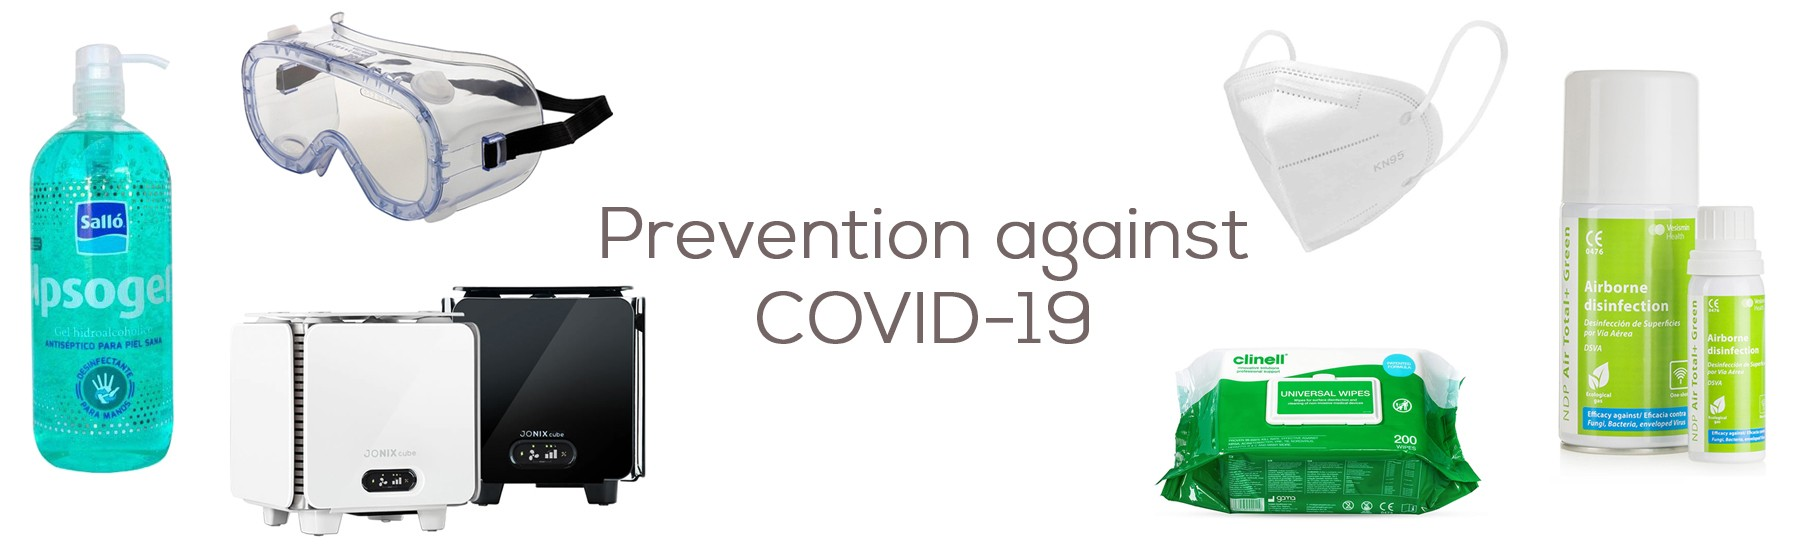 Prevention against Covid-19